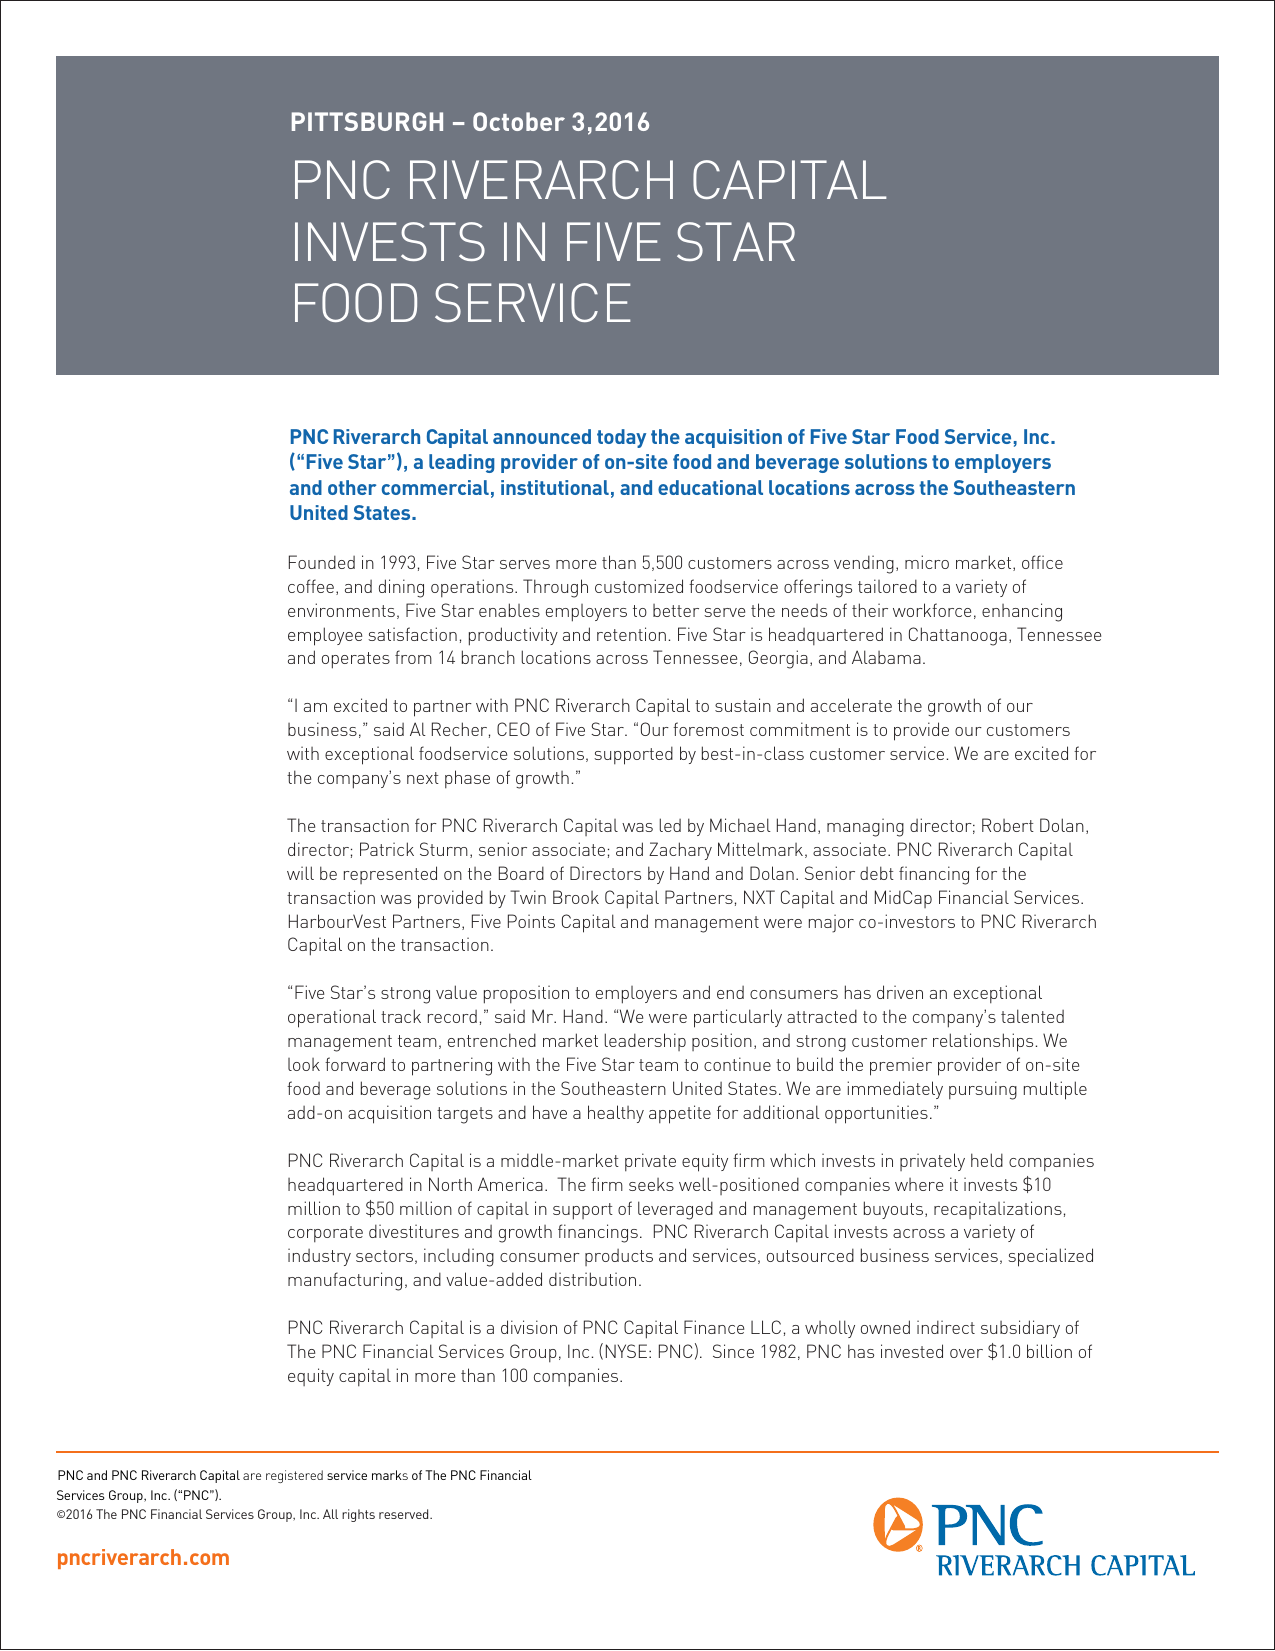 pnc riverarch capital invests in five star food service